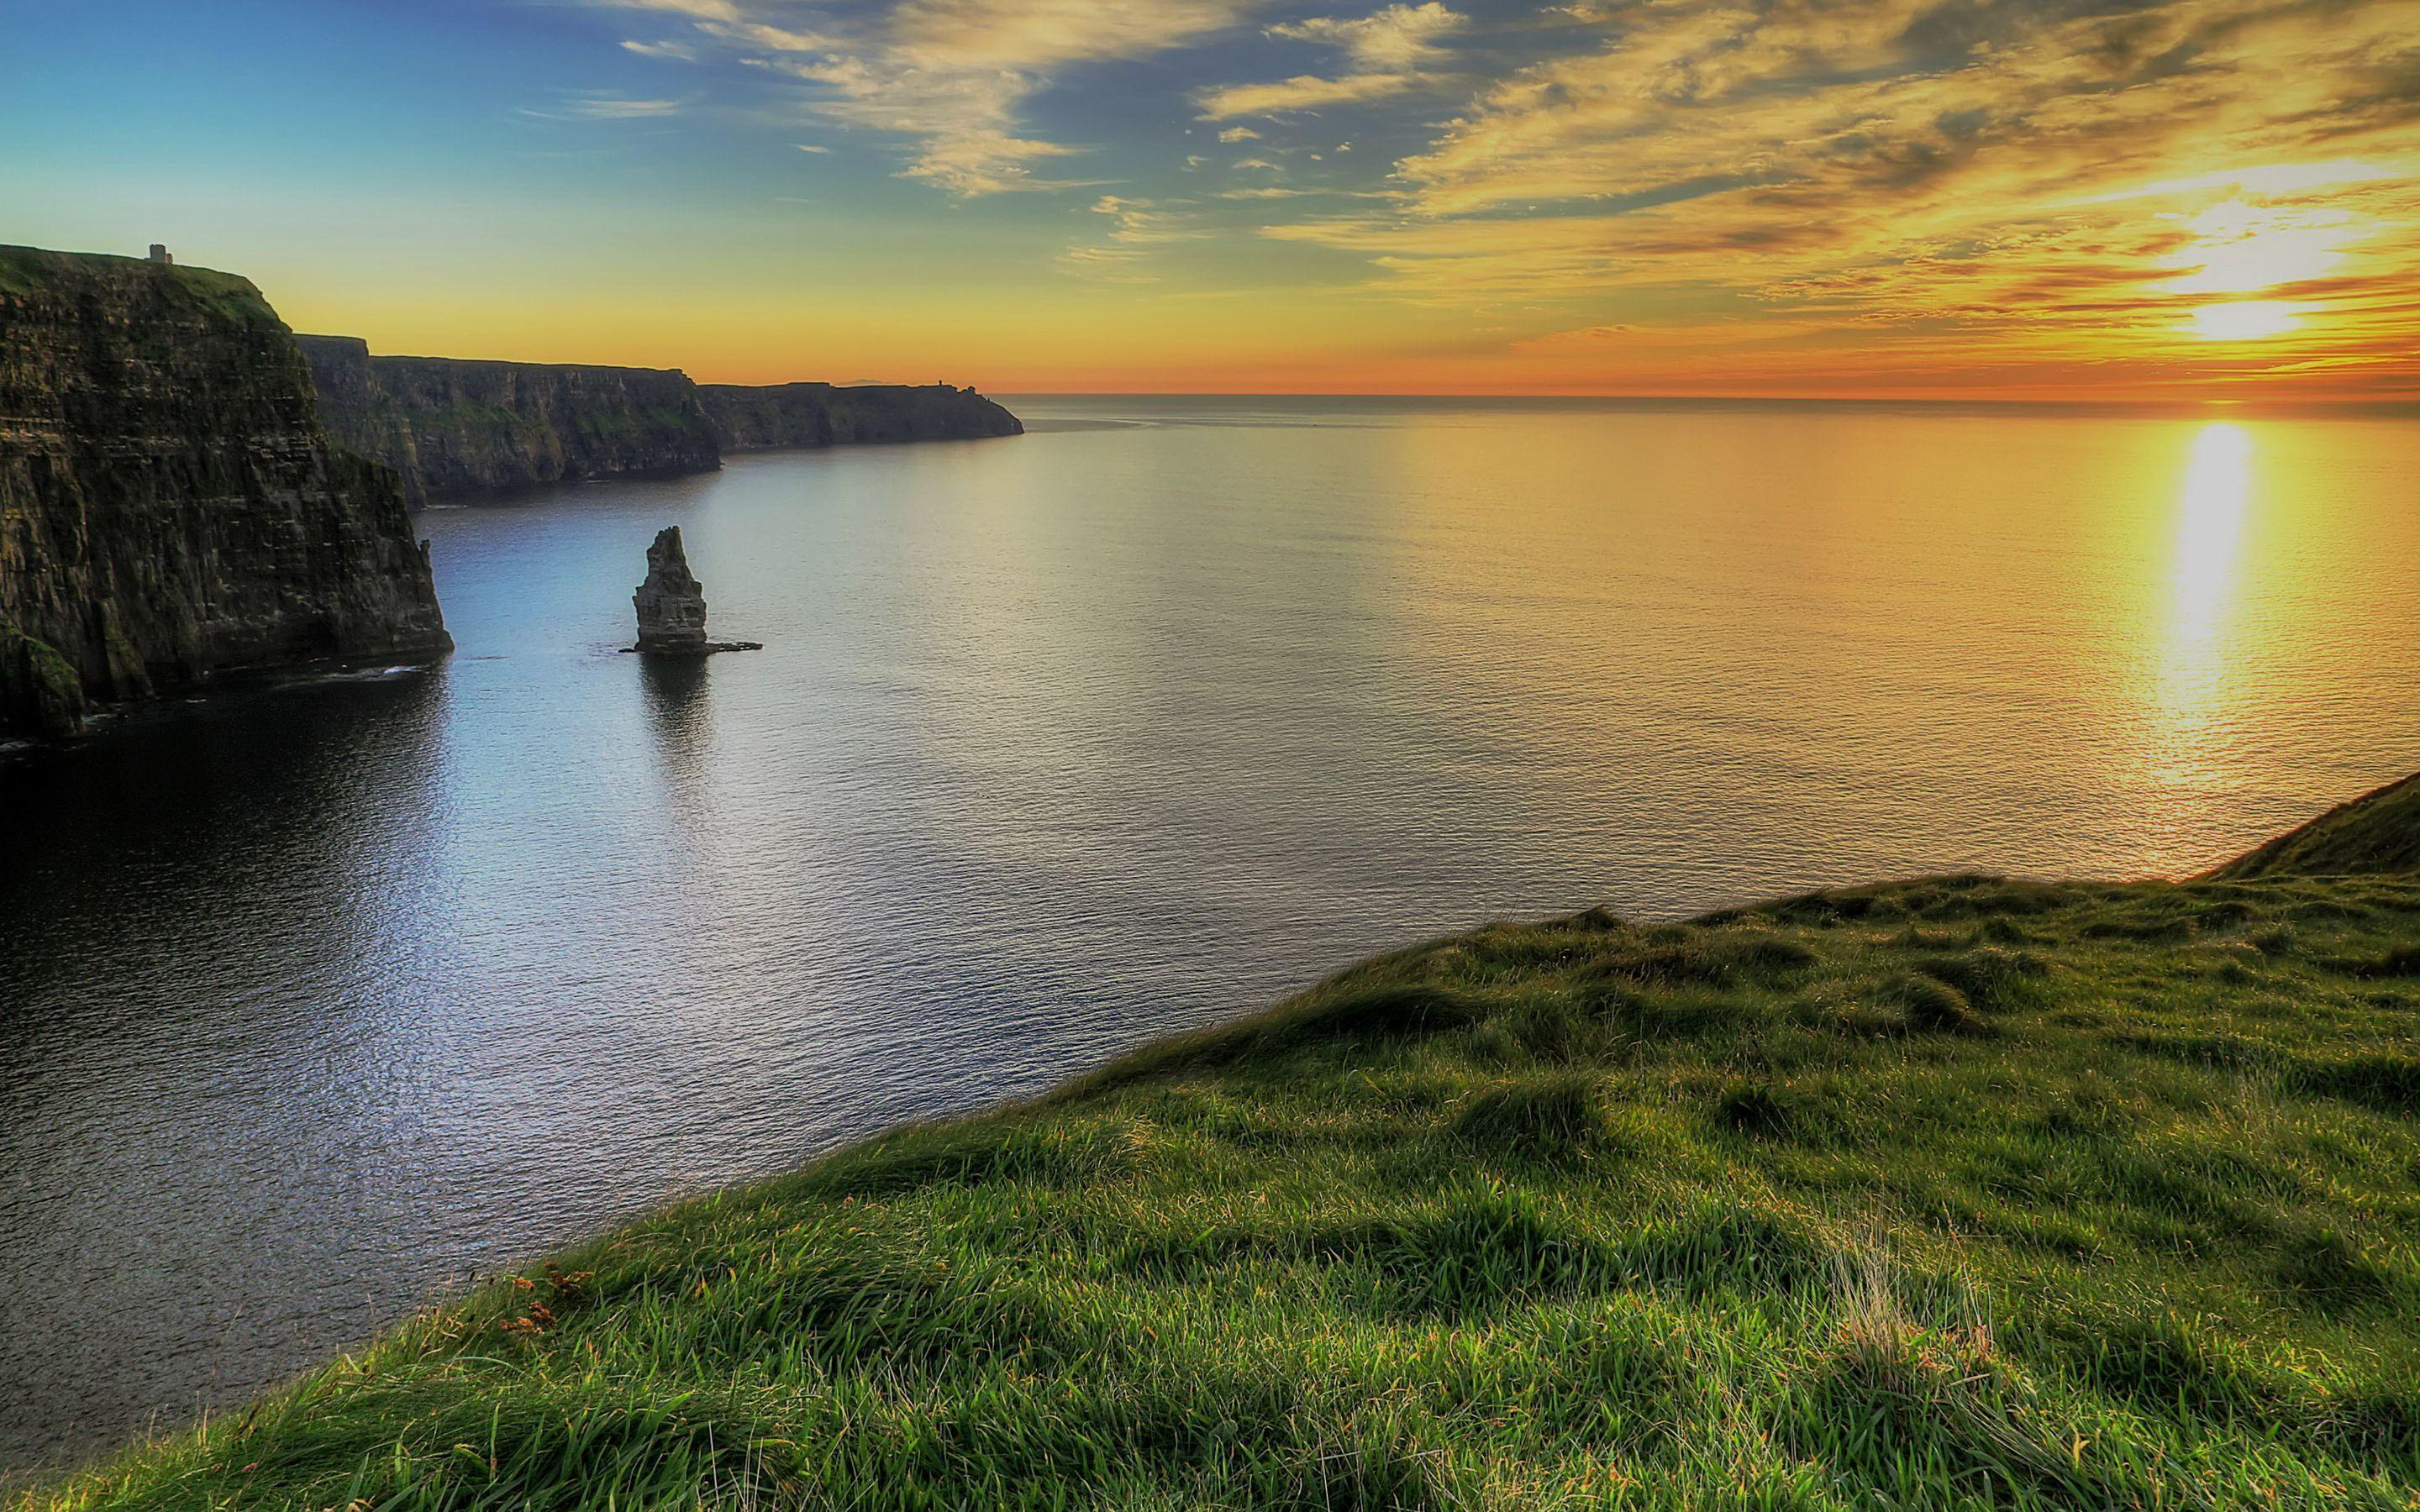 Ireland Wallpapers HD 21903 2880x1800 px